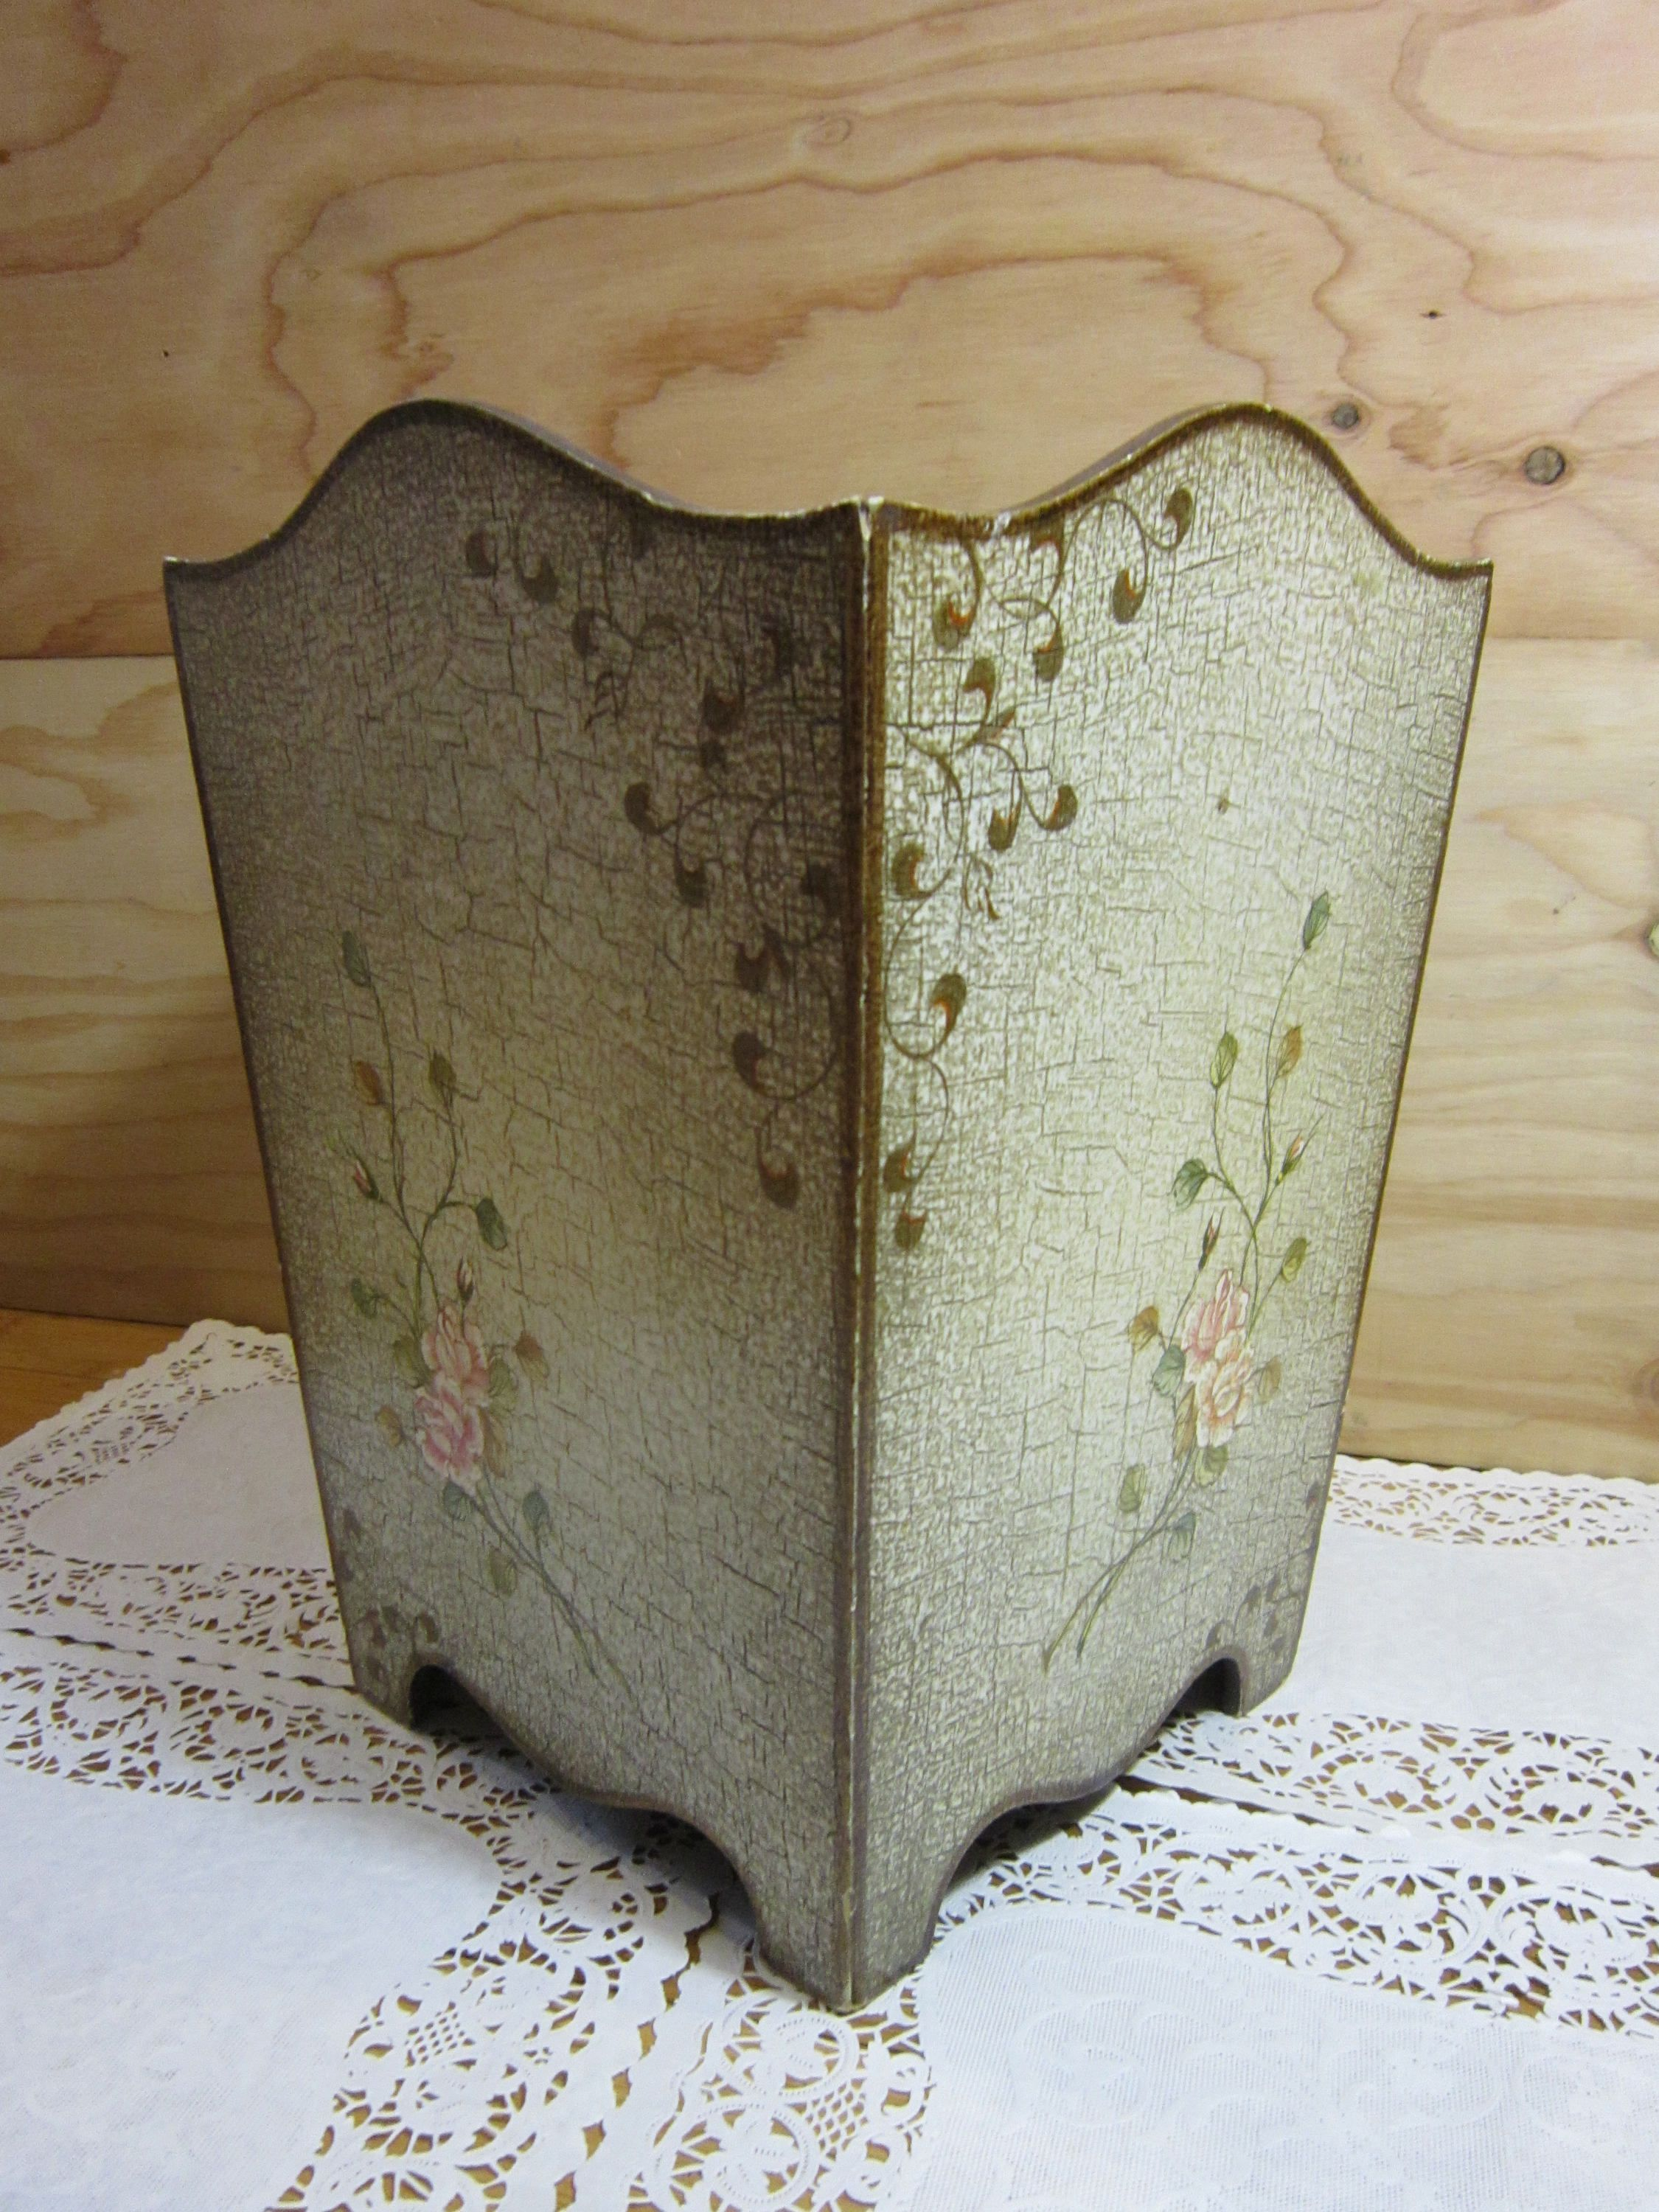 Shabby Chic Waste Baskets Vintage Shabby Chic Wood Waste Basket Wooden Waste Paper Basket